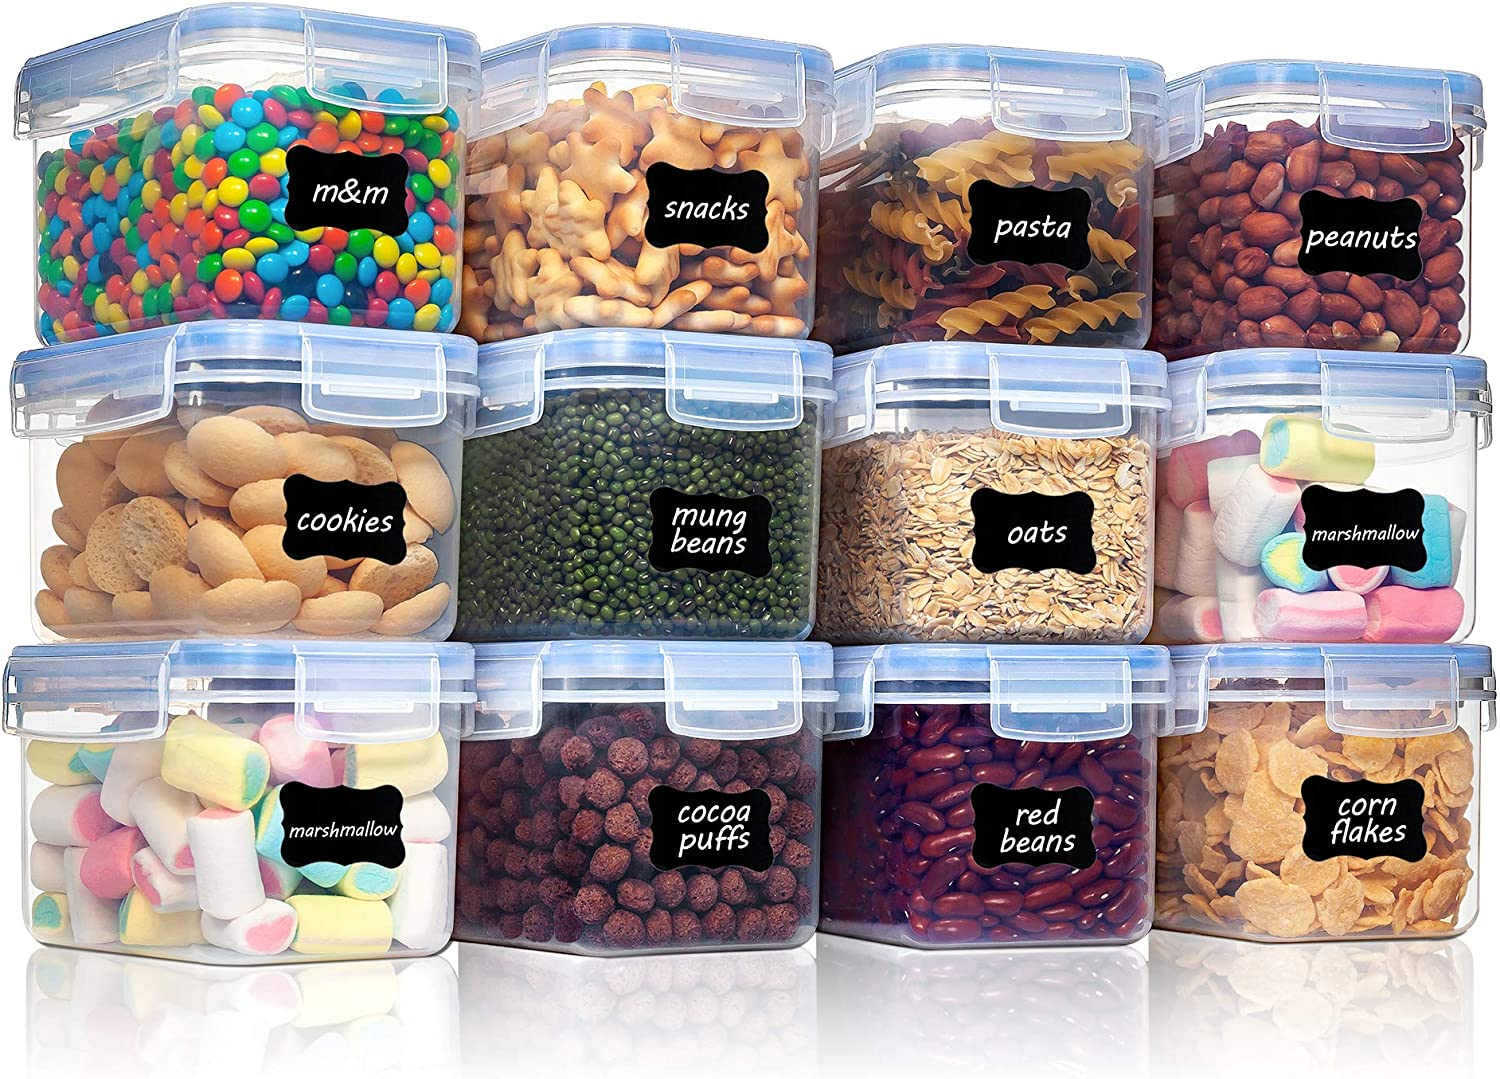 Vtopmart Airtight Food Storage Containers 12 Pieces 0.7qt / 0.8L- Plastic PBA Free Kitchen Pantry Storage Containers for Sugar, Flour and Baking Supplies - Dishwasher Safe - Include 24 Labels, Blue